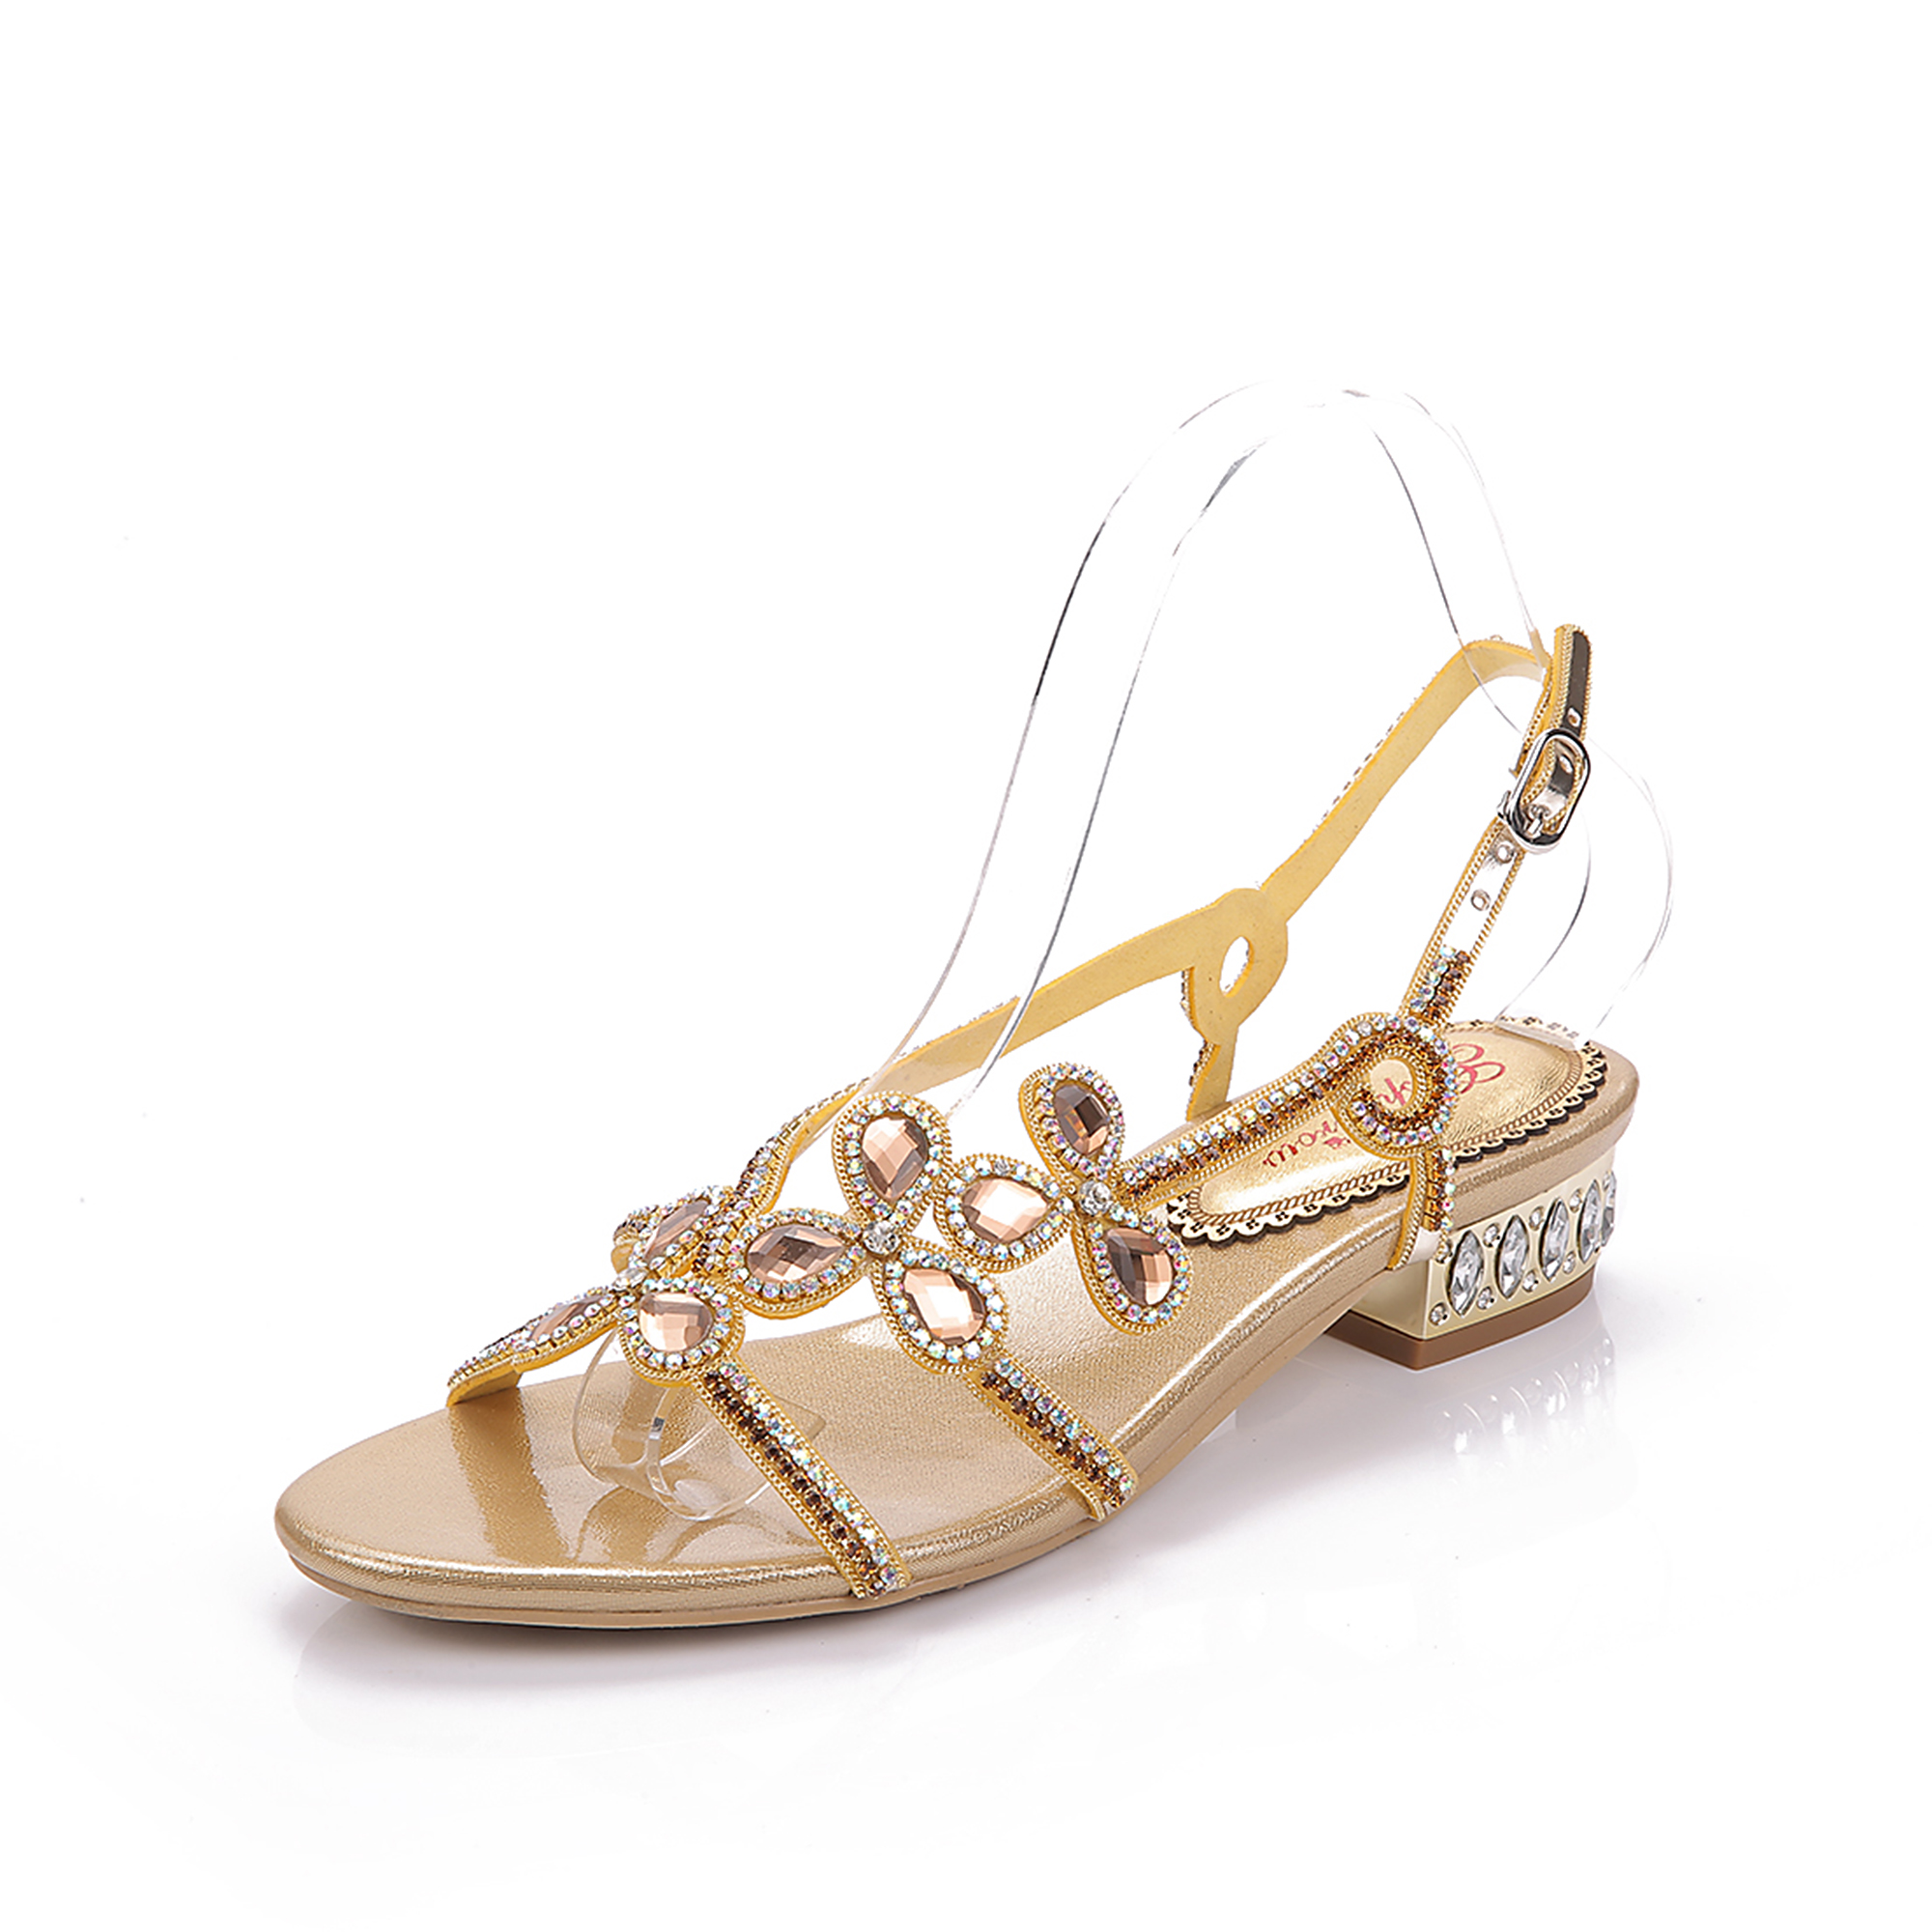 Gold strappy sandals low heel is heel for Gold dress sandals for wedding